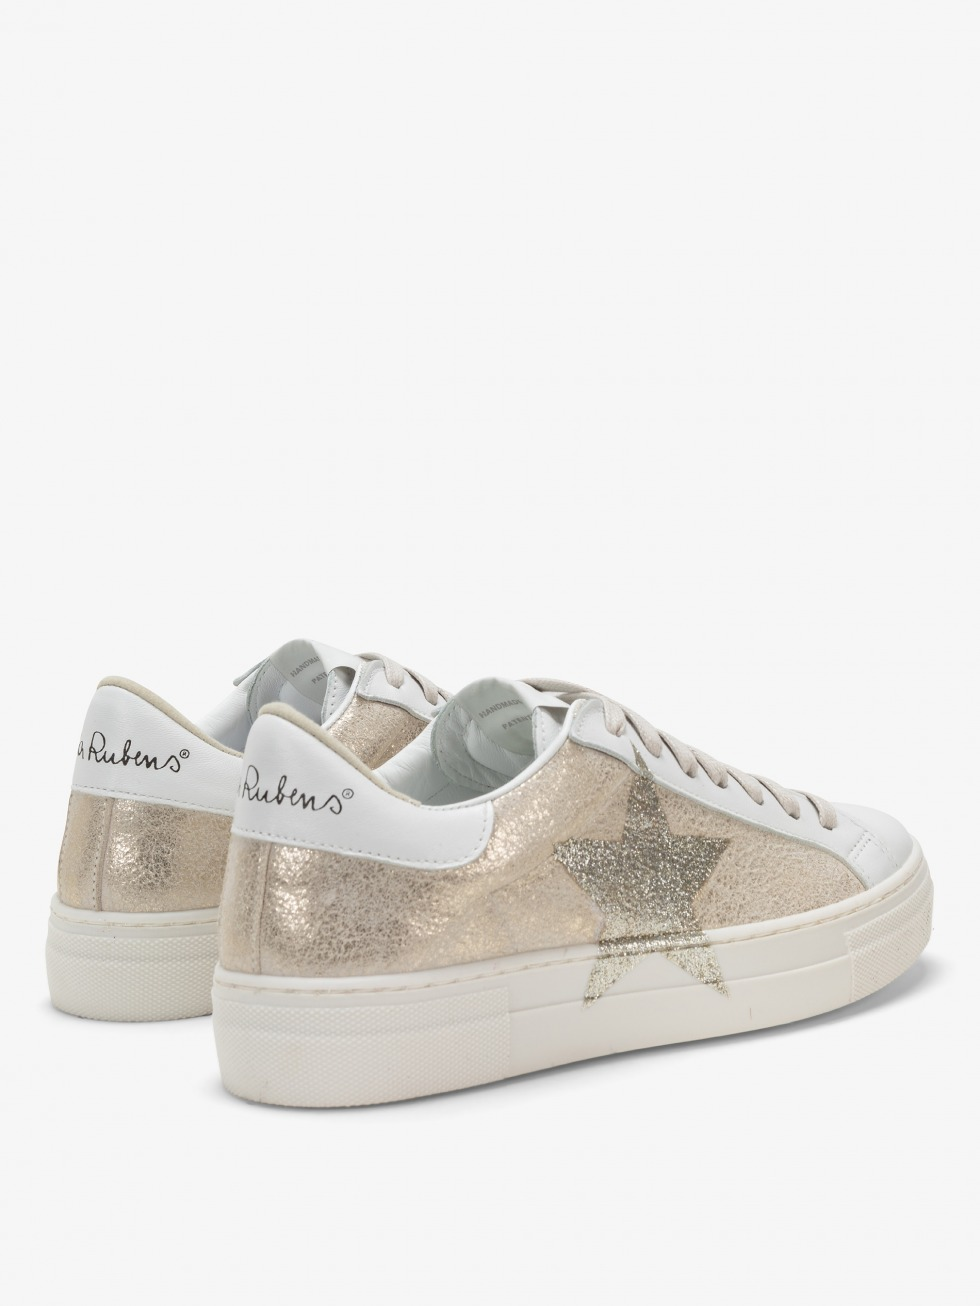 Martini Sneakers Shabby - Star